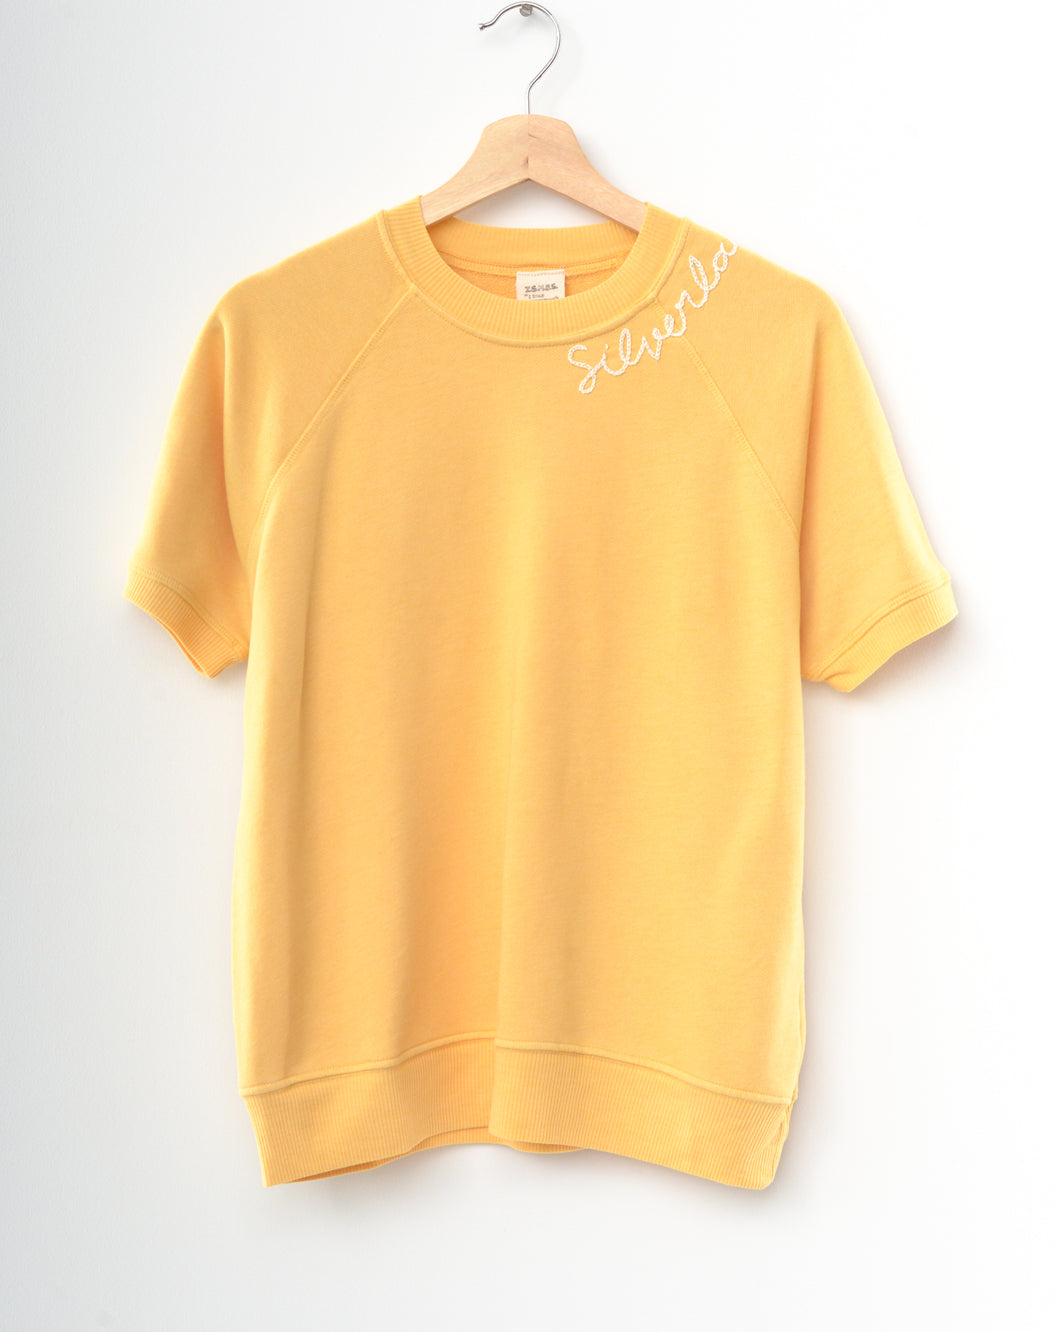 Happy Silverlake Shorty Sweatshirt - Sunset Gold